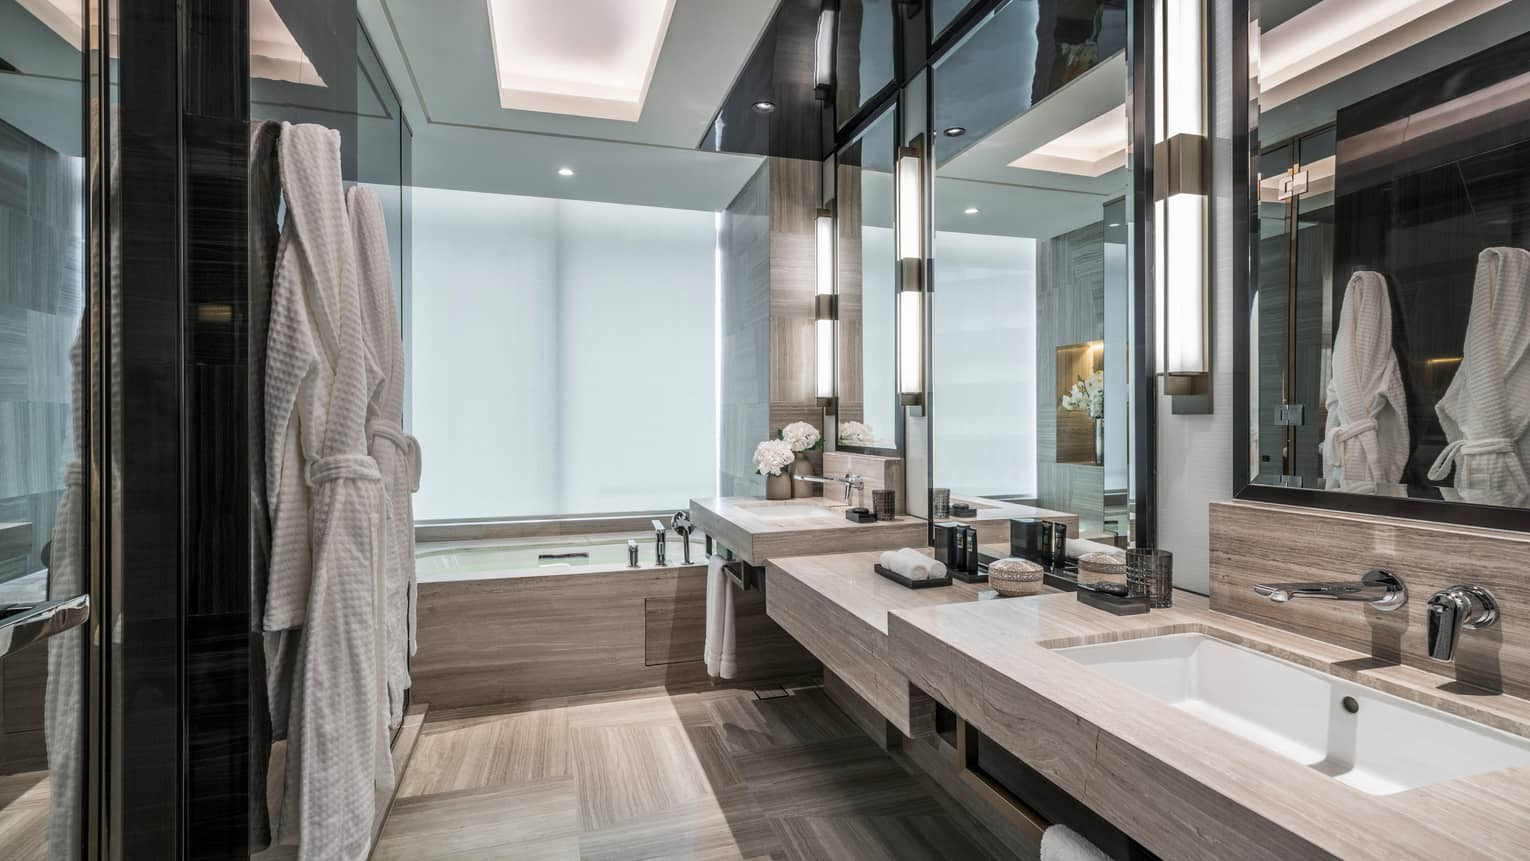 Corner Room Bathroom with robes hanging on the wall